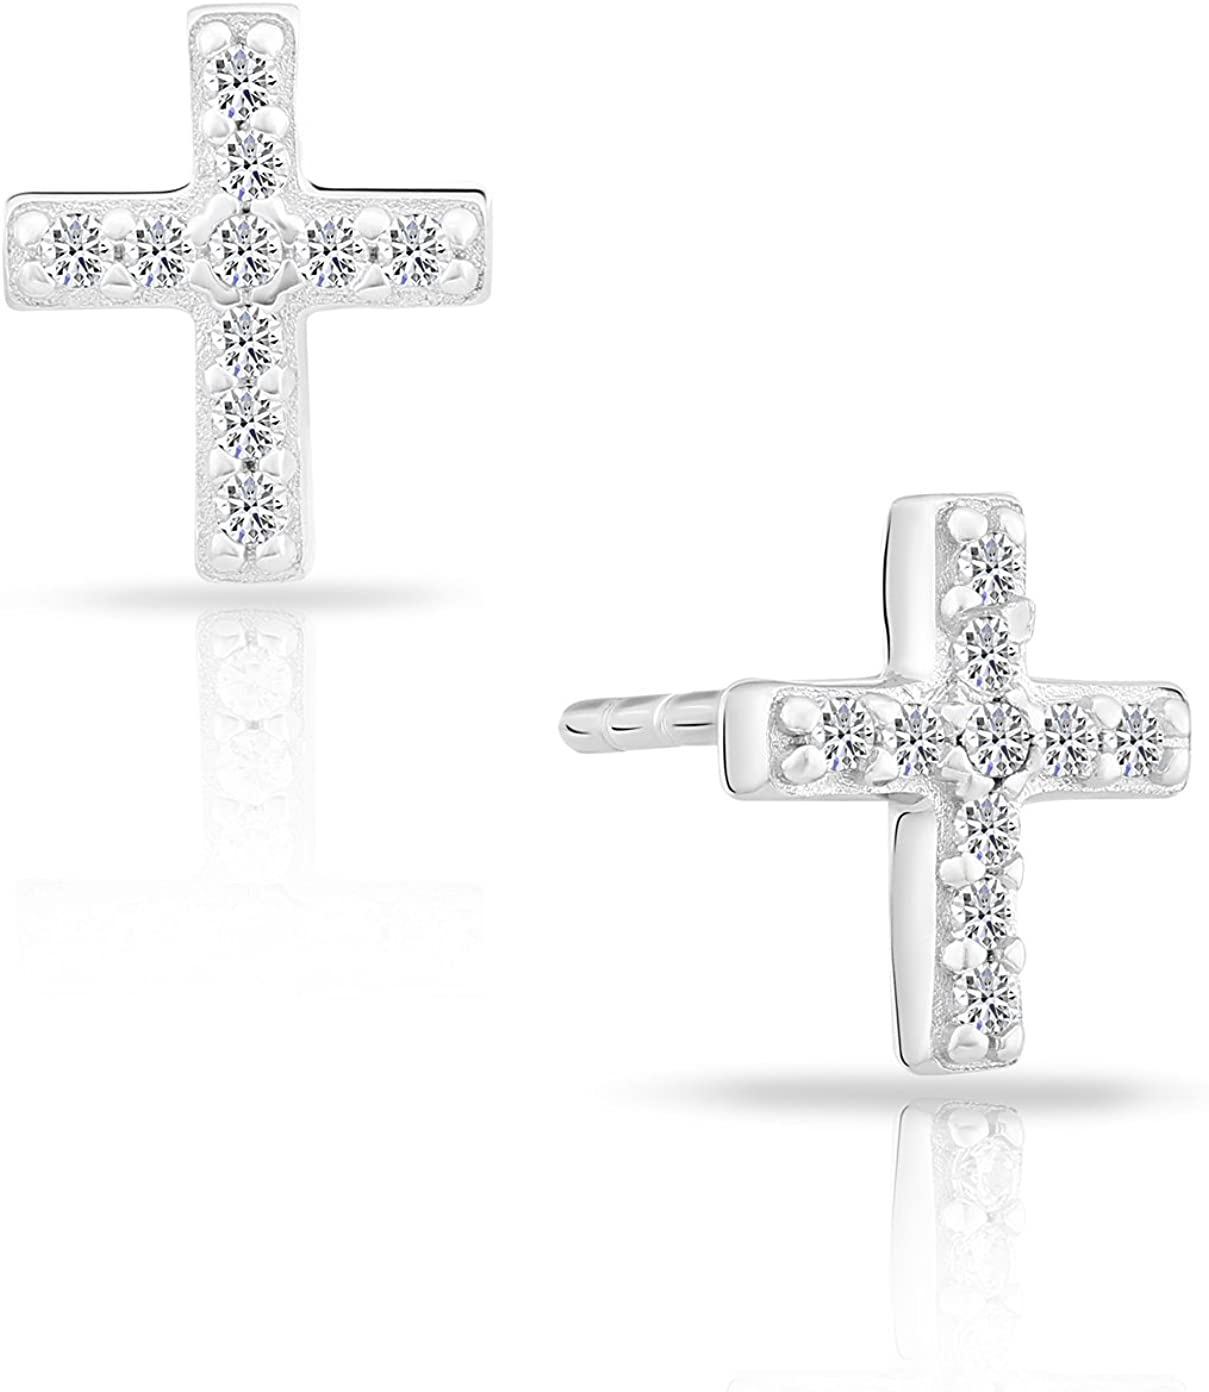 Tiny Sterling Silver Cross Small Stud Earrings with Cubic Zirconia